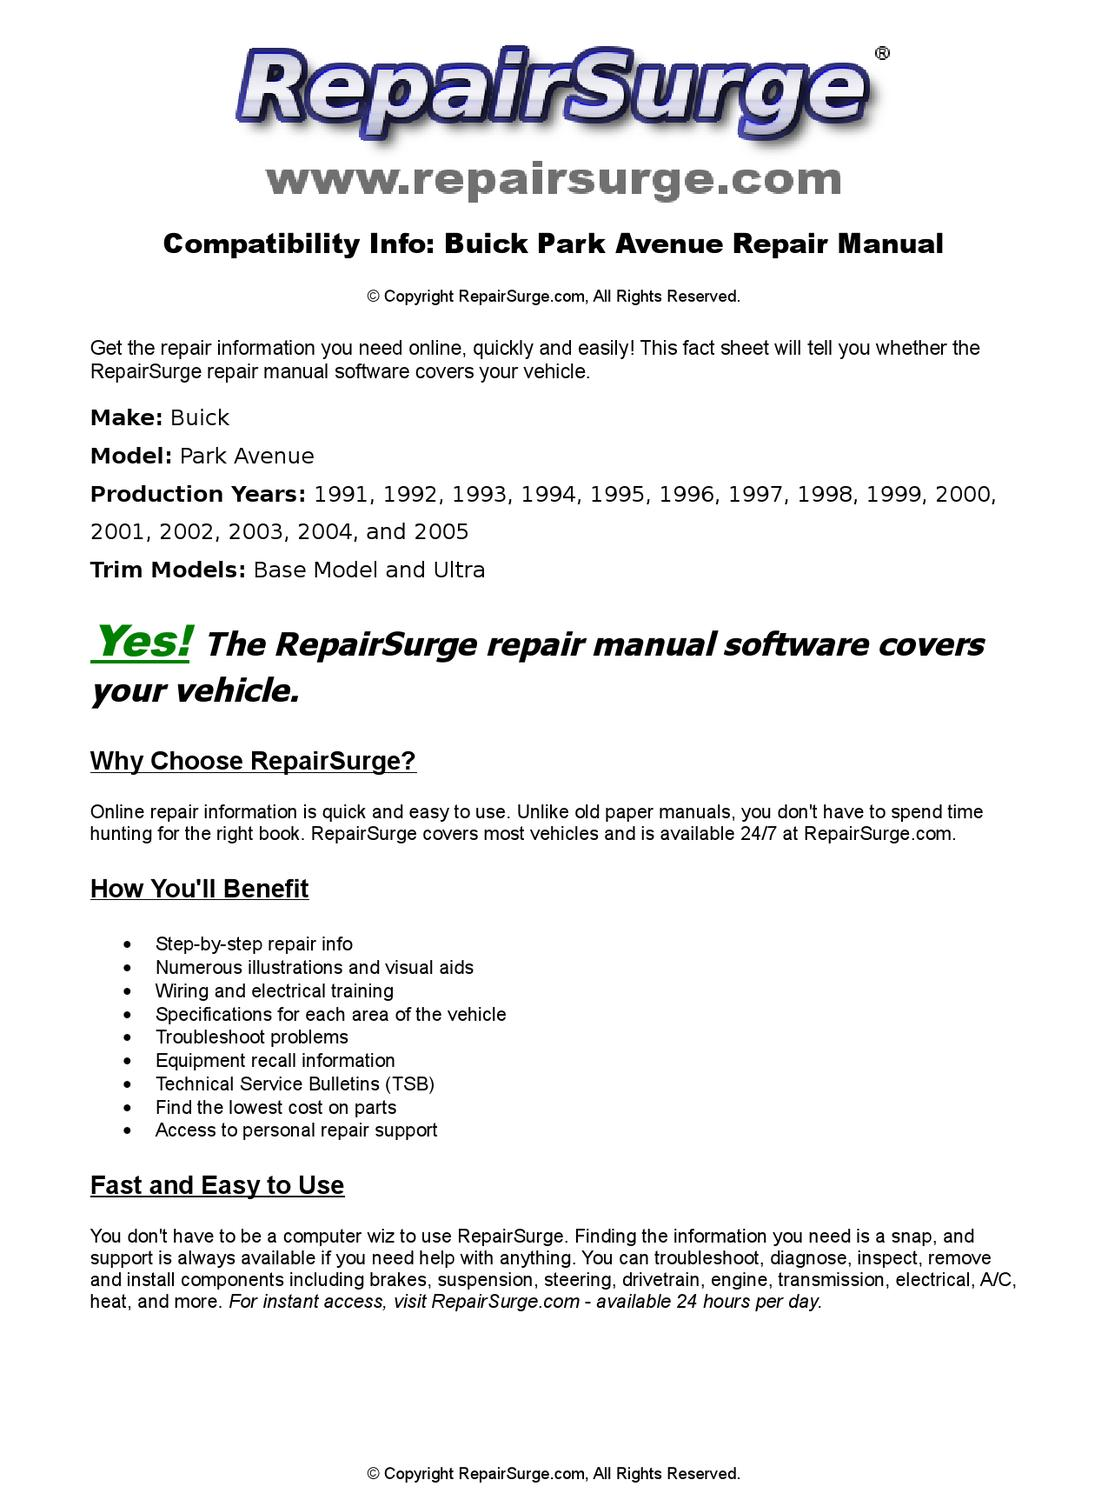 Buick Park Avenue Online Repair Manual For 1991, 1992, 1993, 1994, 1995,  1996, 1997, 1998, 1999, 200 by RepairSurge - issuu